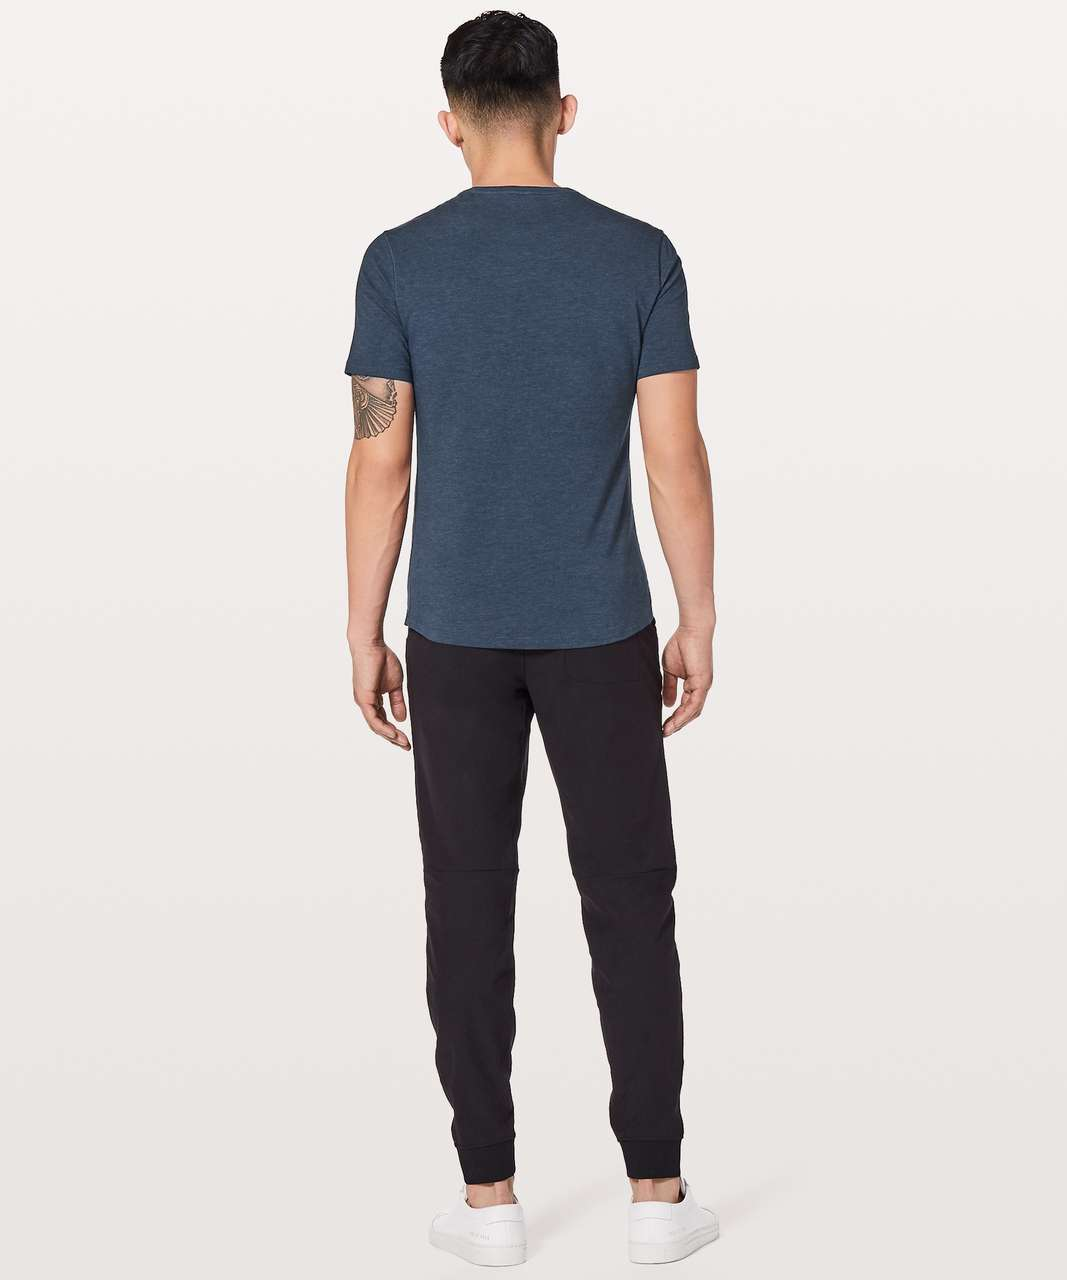 Lululemon 5 Year Basic V *Updated Fit - Heathered Nautical Navy